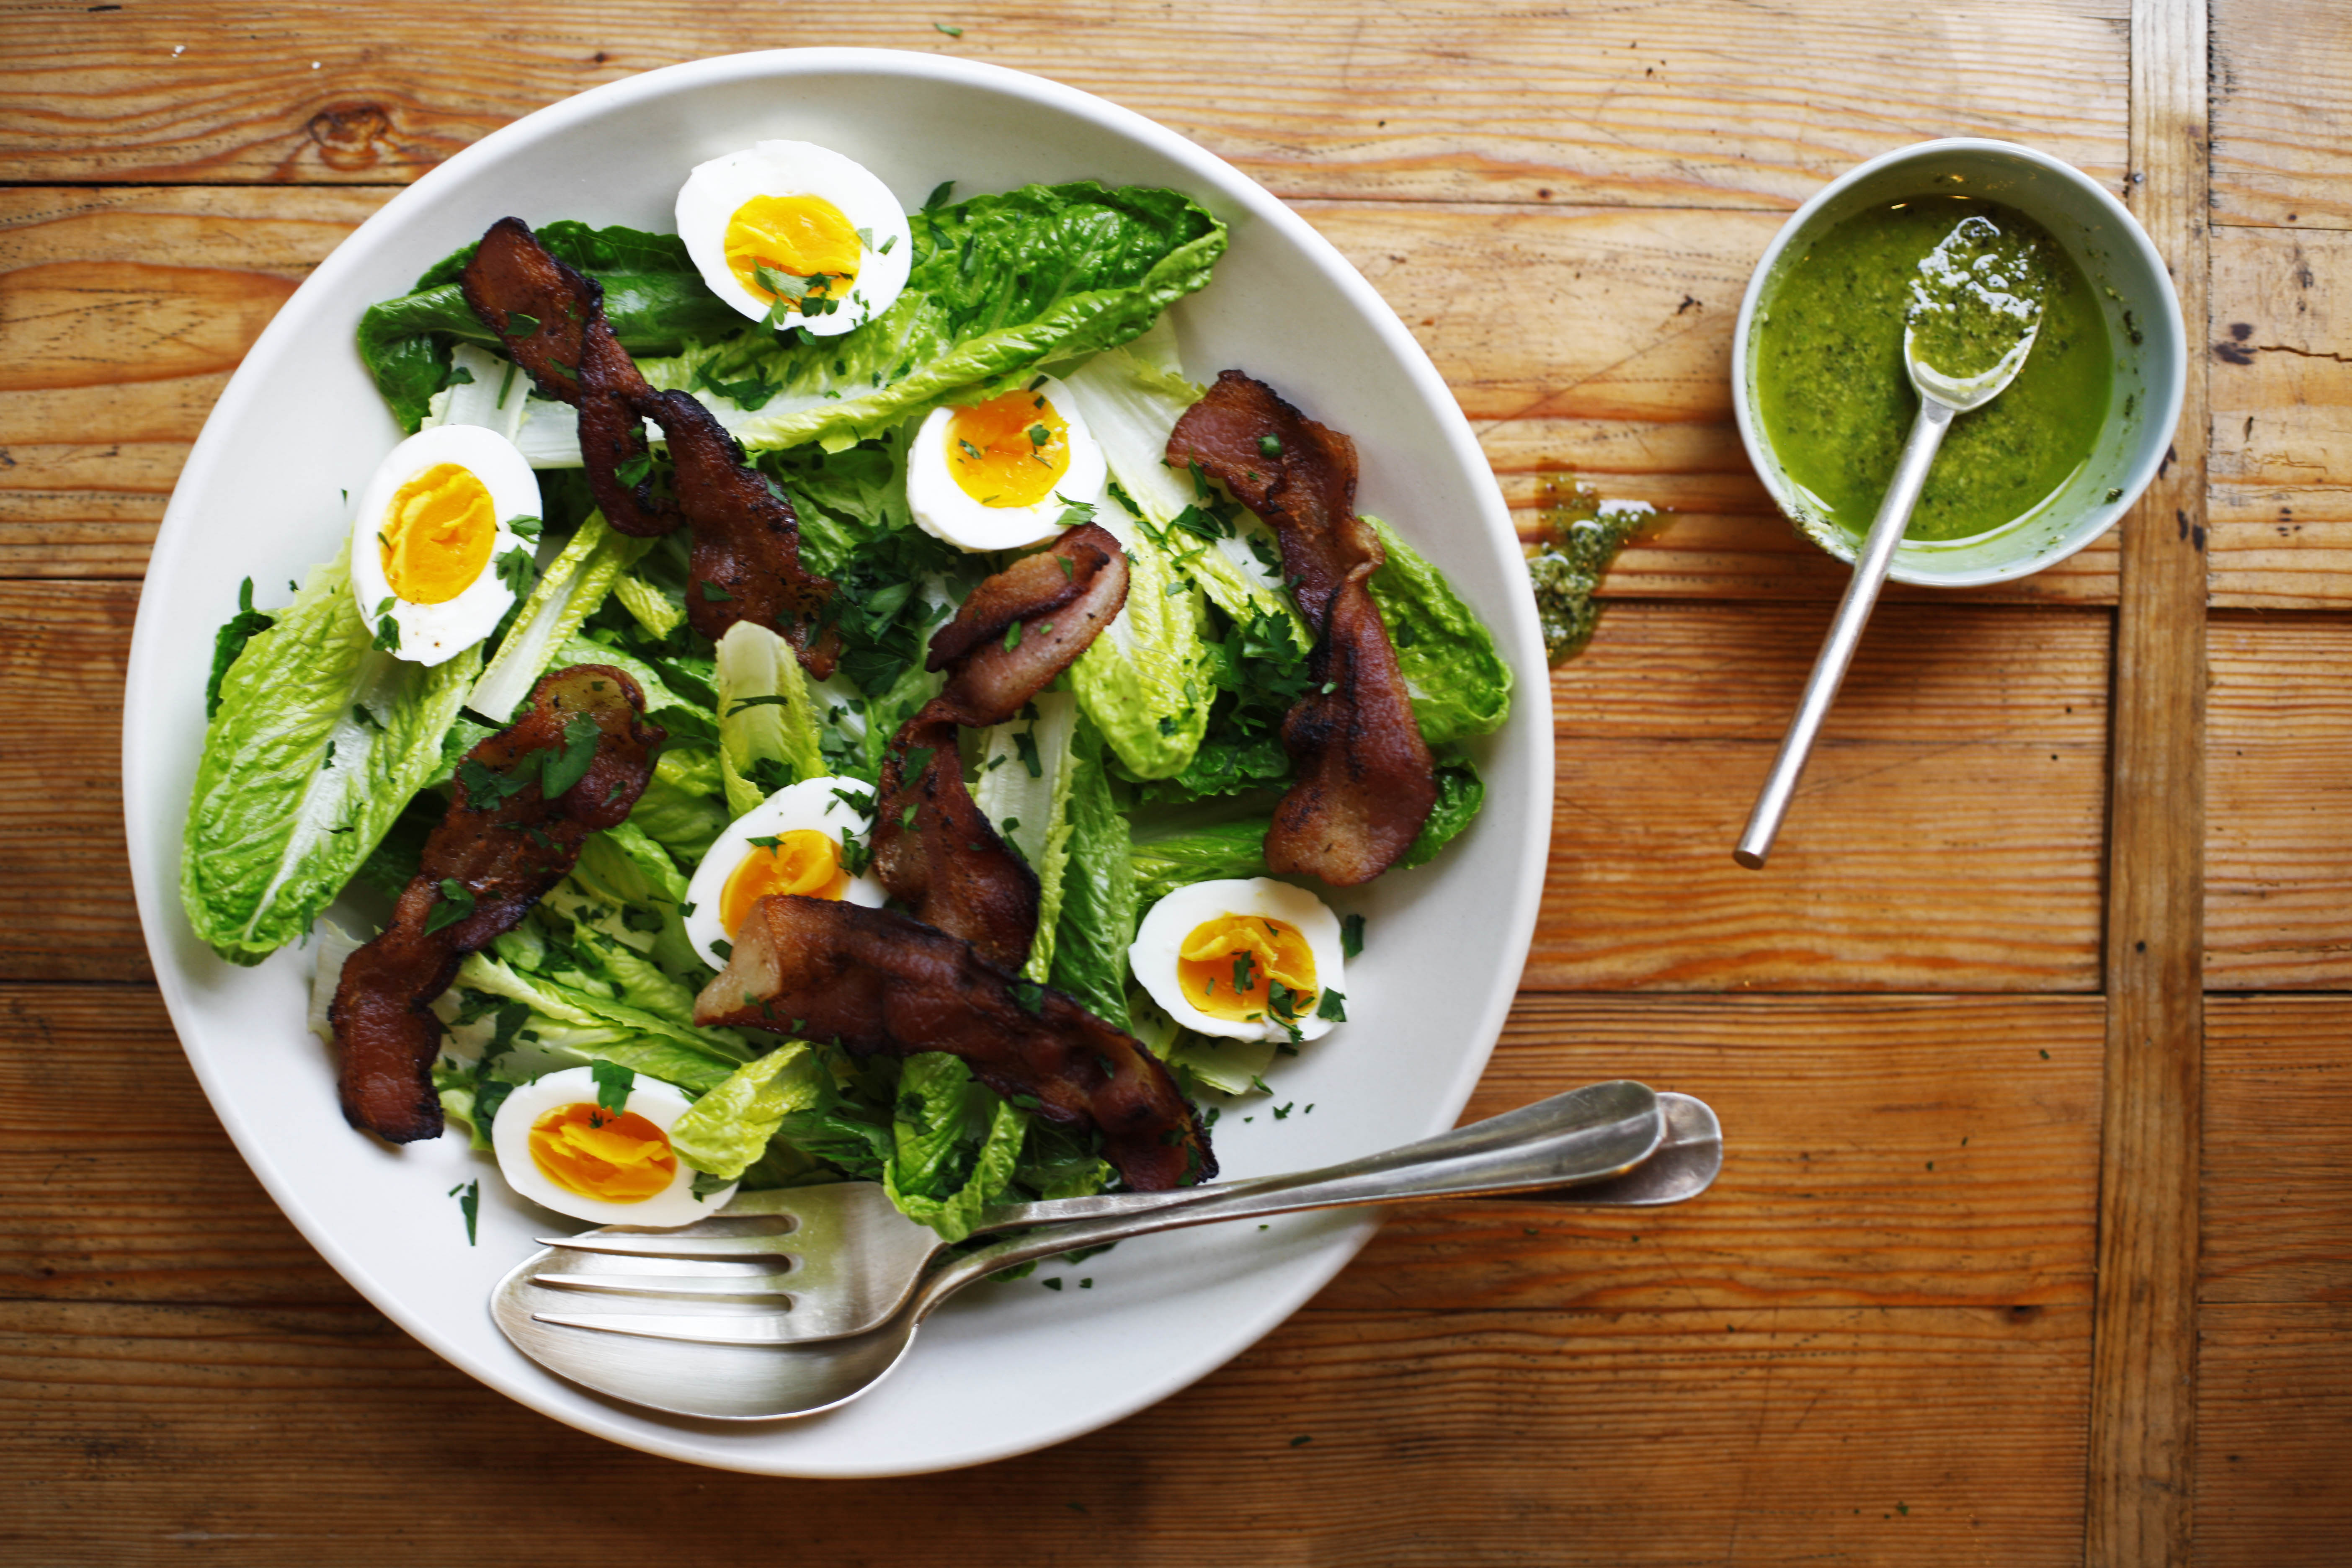 Romaine salad with bacon 5 minute eggs and pesto dressing for Food52 lemon bar